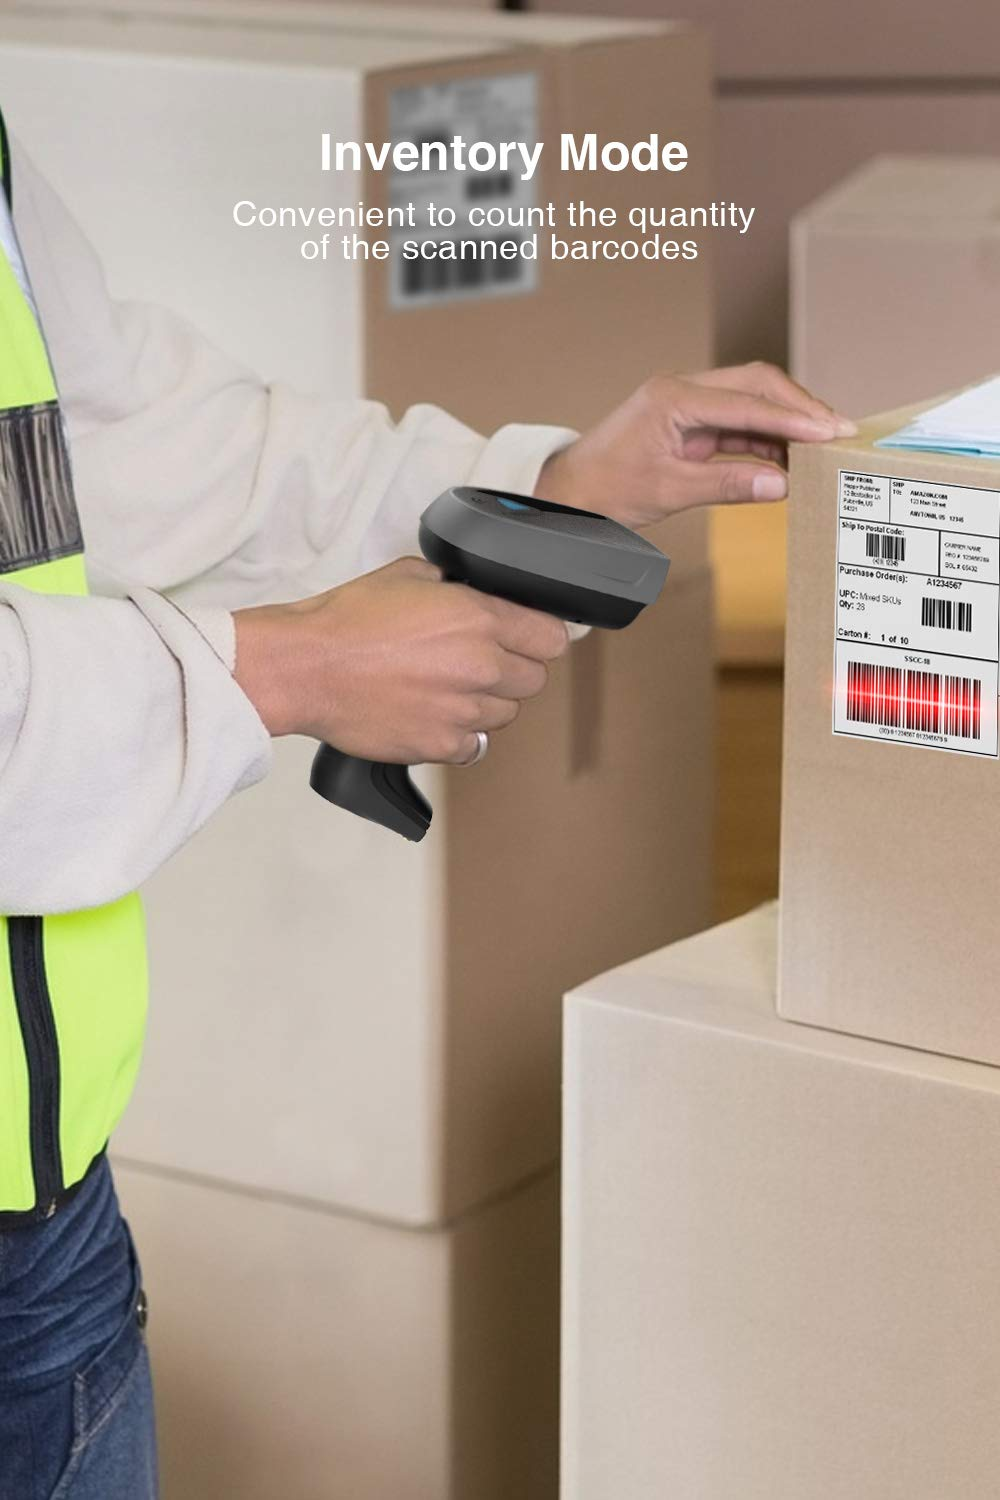 CCD Bluetooth Barcode Reader BS01001 Inateck 1D Wireless Screen Barcode Scanner with Smart Base